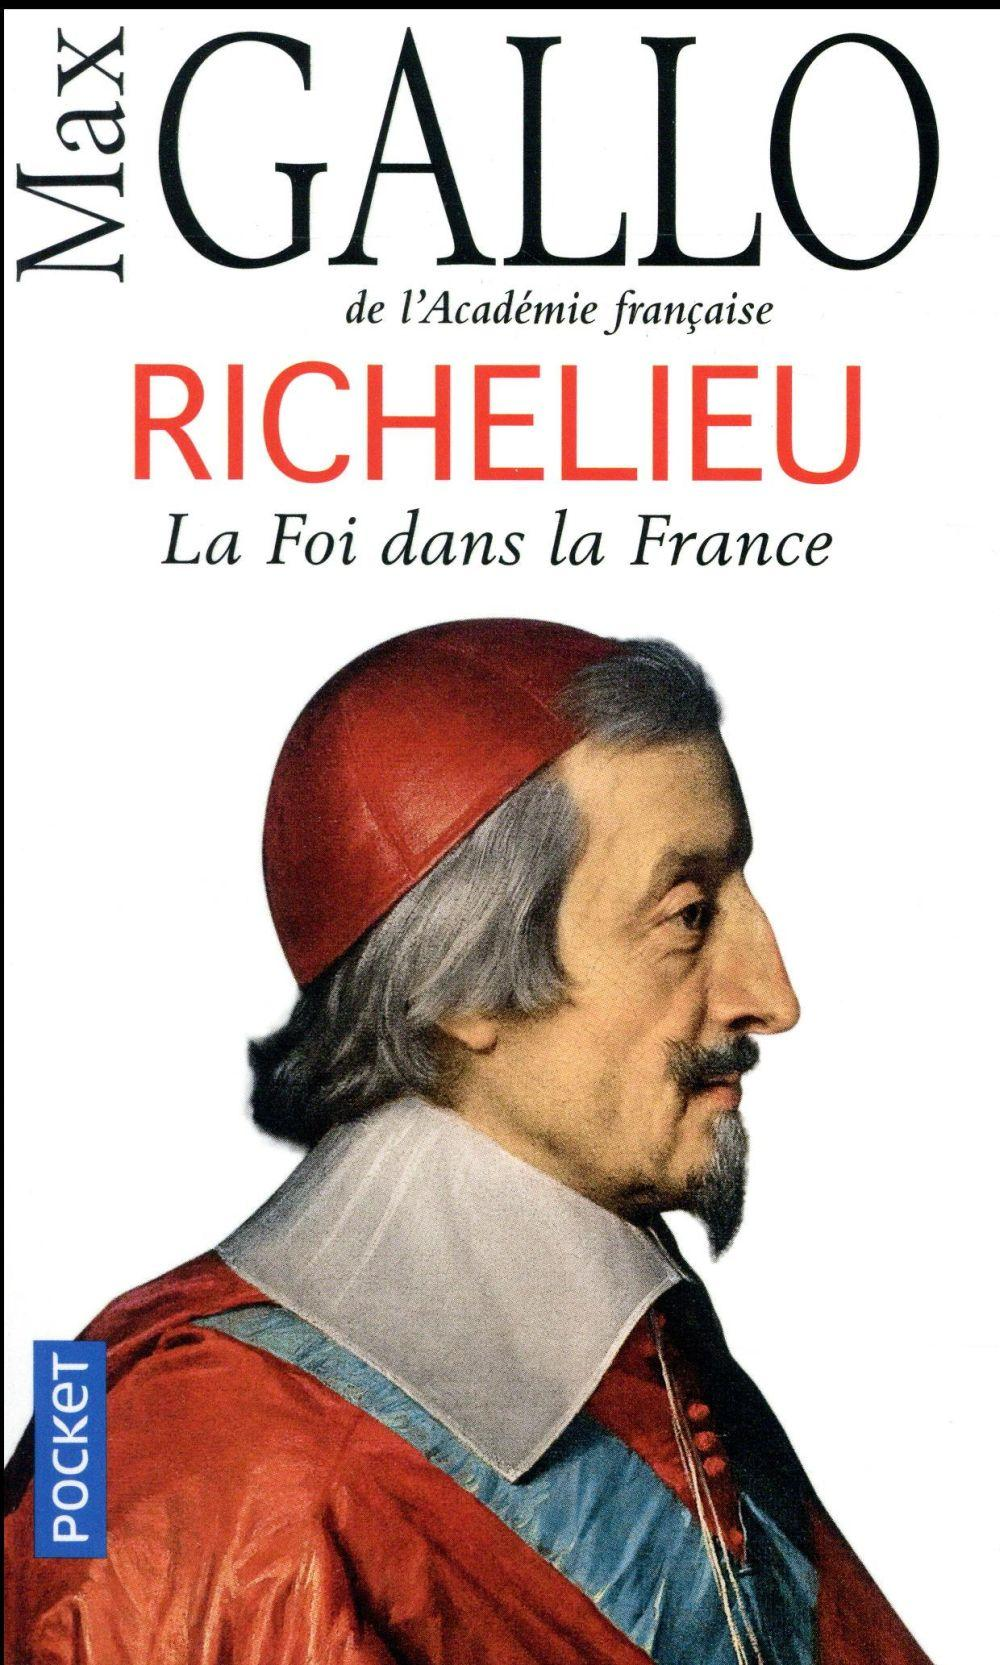 Richelieu ; la foi dans la France  - Max Gallo